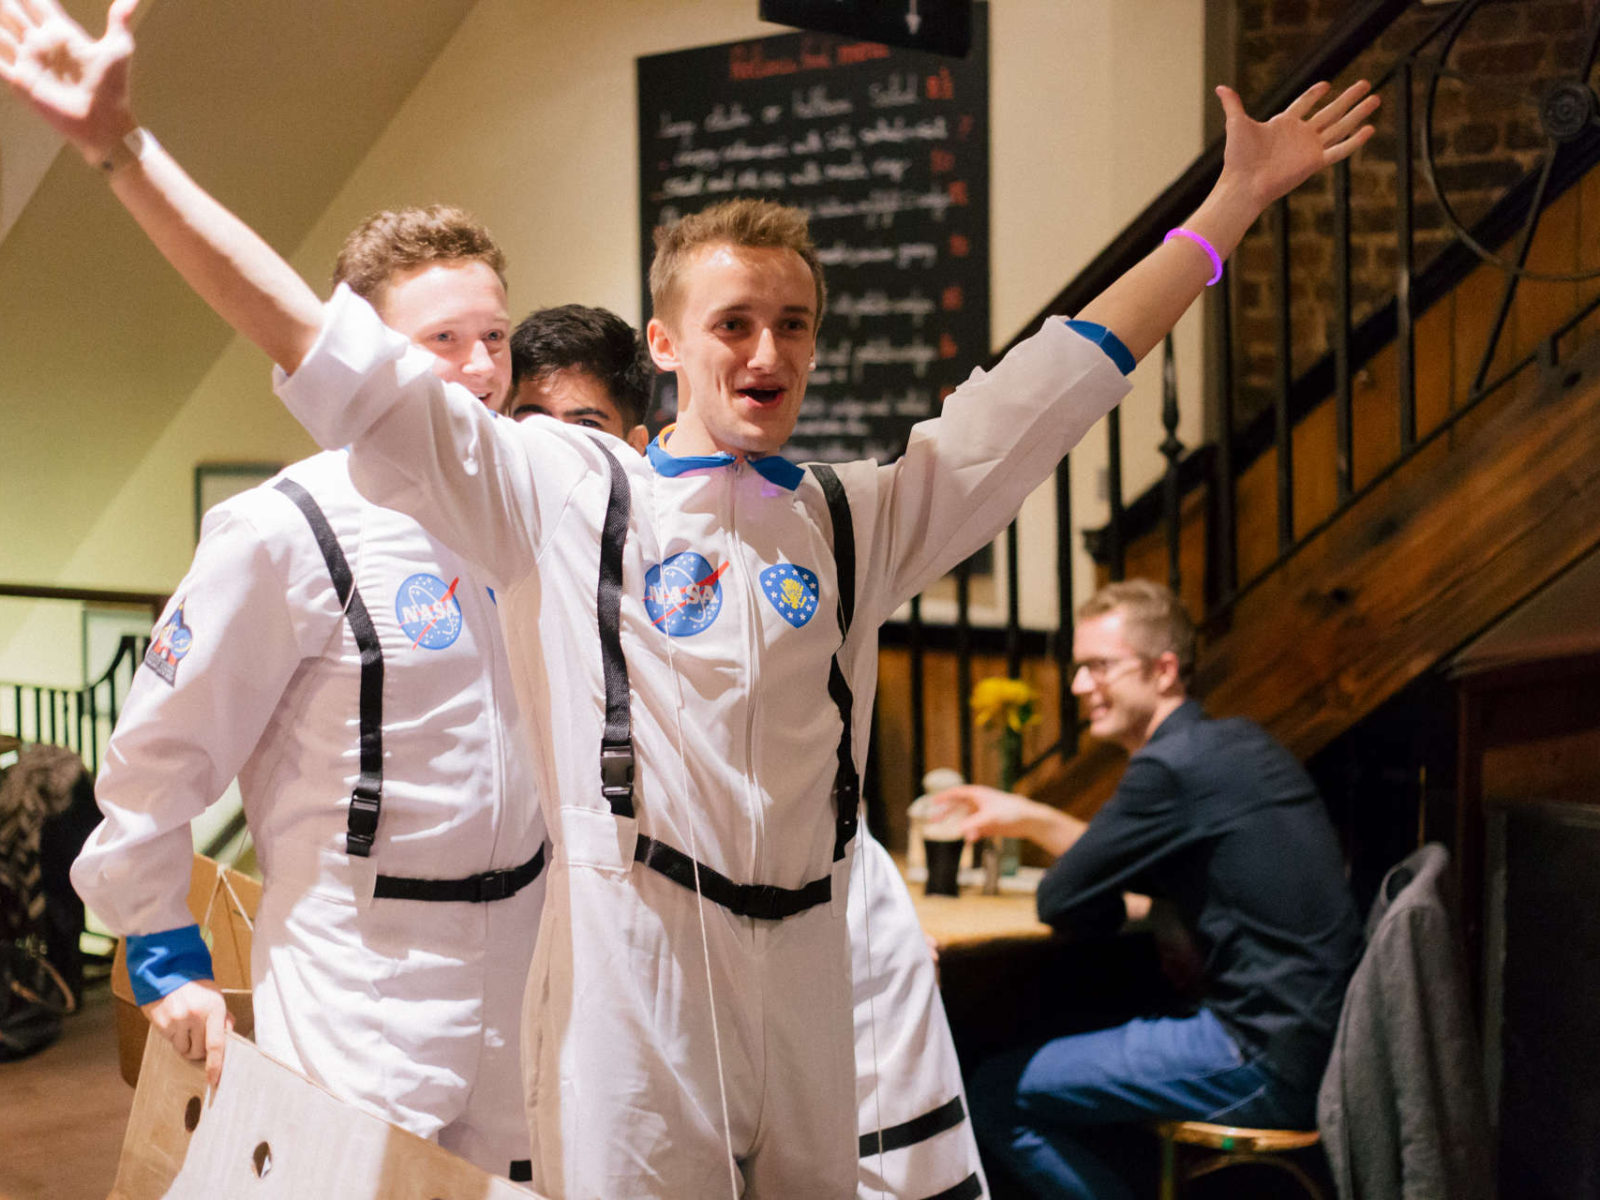 Sometimes we even have astronauts at the pub…